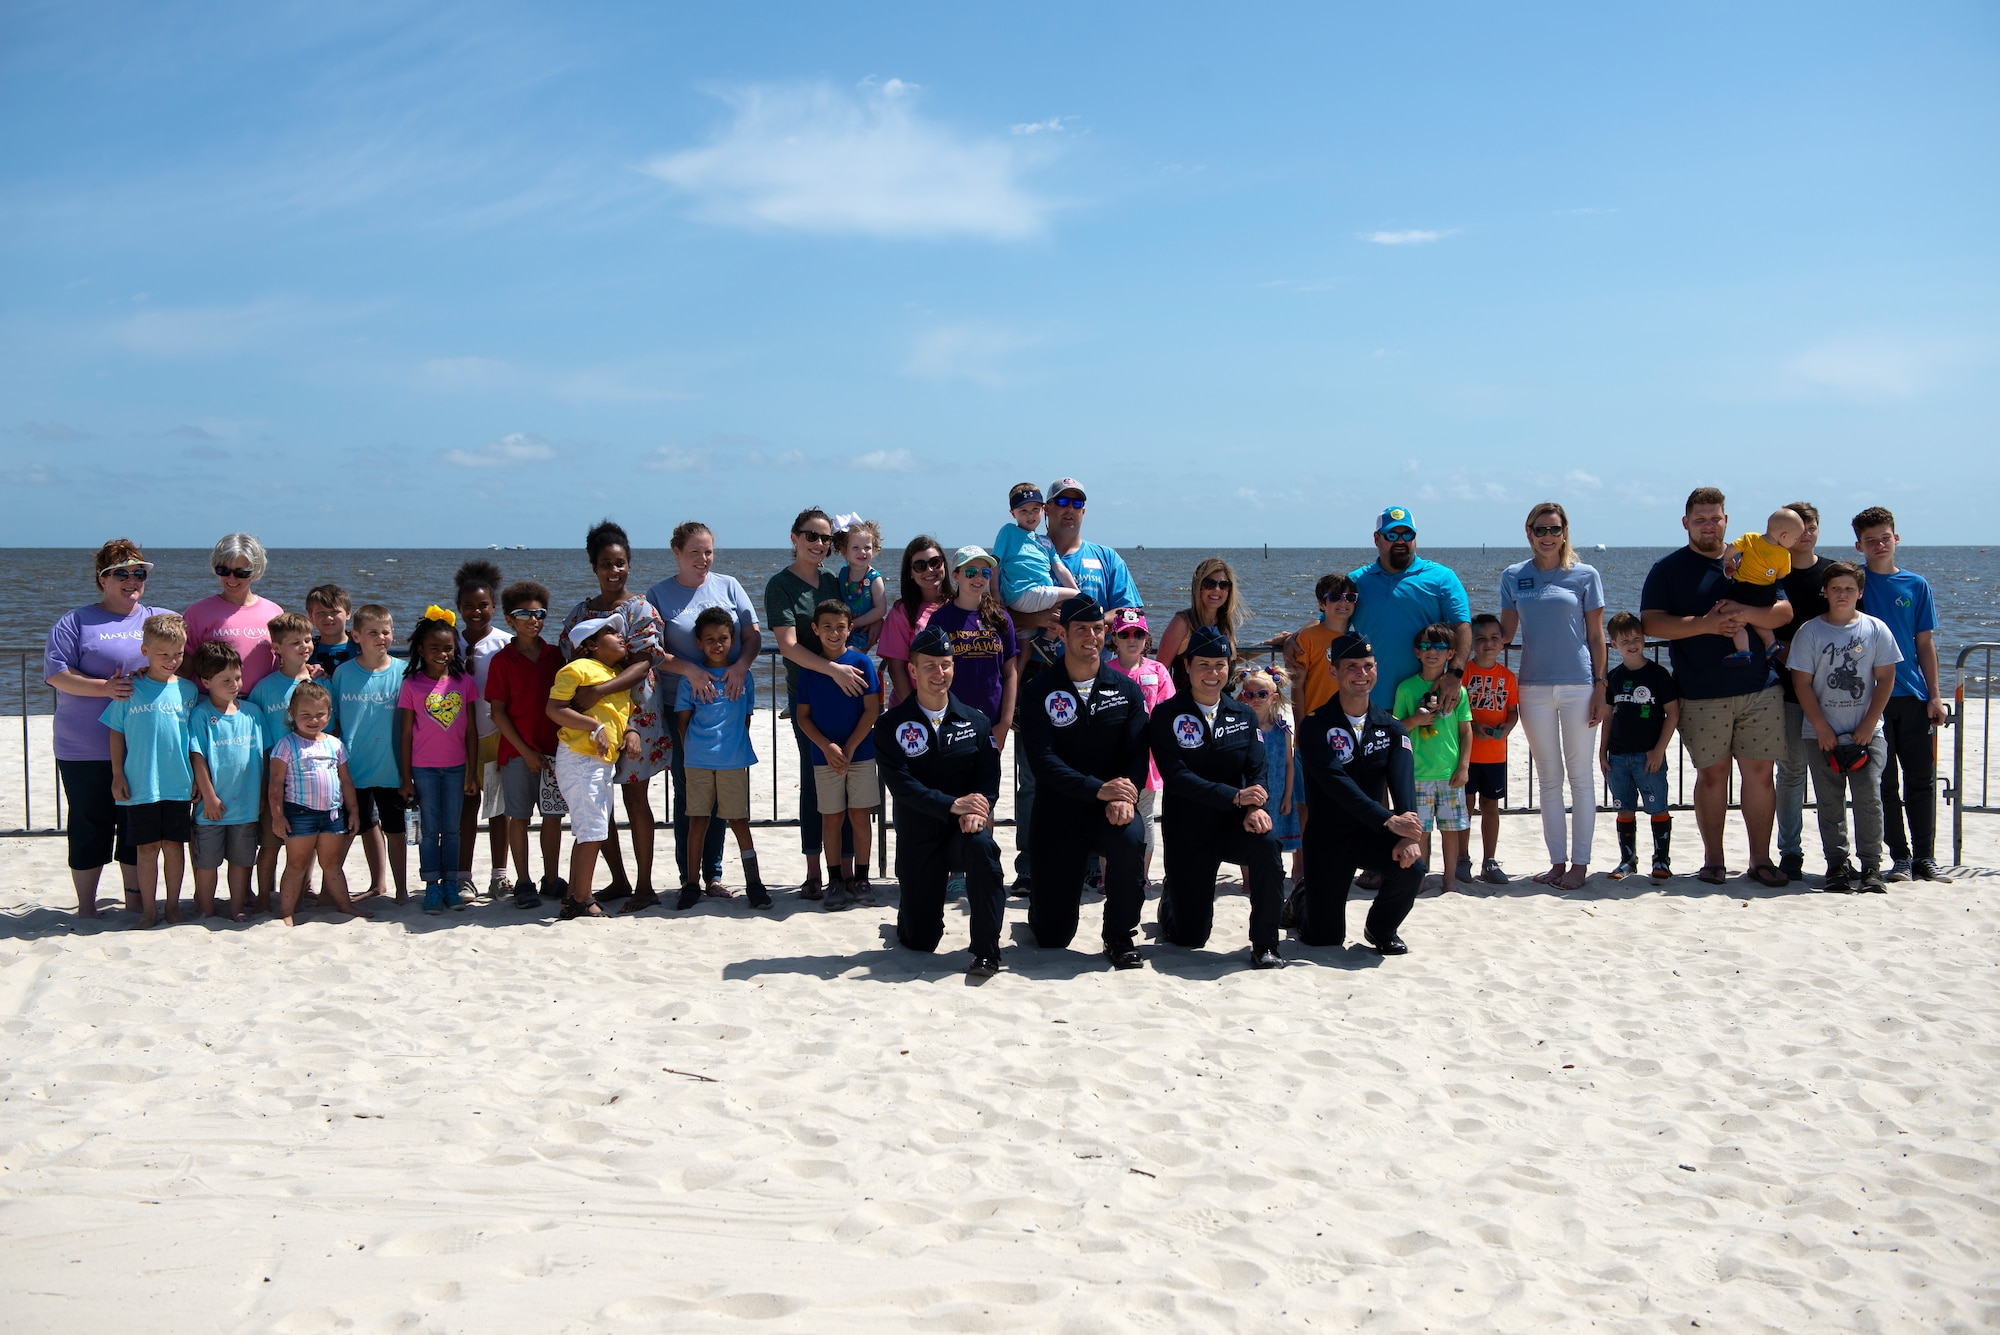 Make-A-Wish families pose for a group photo with the U.S. Air Force Thunderbirds in Biloxi, Mississippi, May 3, 2019. After viewing the Thunderbirds' practice session for the Keesler and Biloxi Air Show, the families had the opportunity to meet and speak with members of the Thunderbirds' team. (U.S. Air Force photo by Airman 1st Class Kimberly L. Mueller)